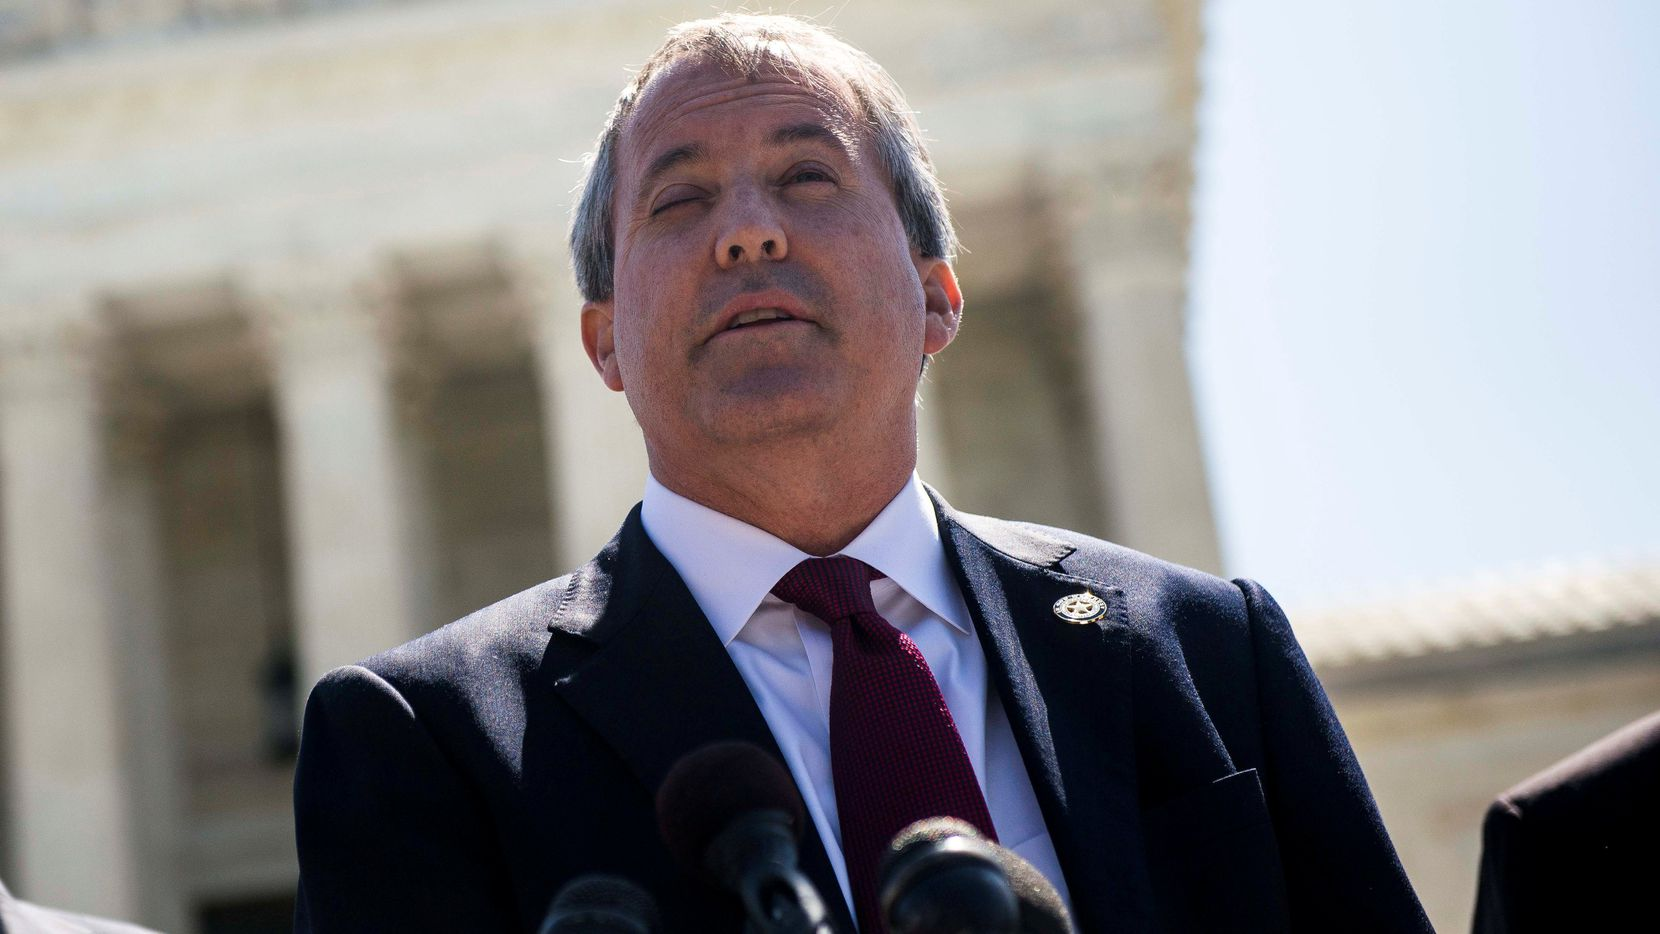 Texas Attorney General Ken Paxton stands outside the U.S. Supreme Court building in 2016. Paxton released an opinion on Wednesday  clarifying that felons could not run for office or serve as an elected official unless they'd received some kind of clemency from the governor or a judge.